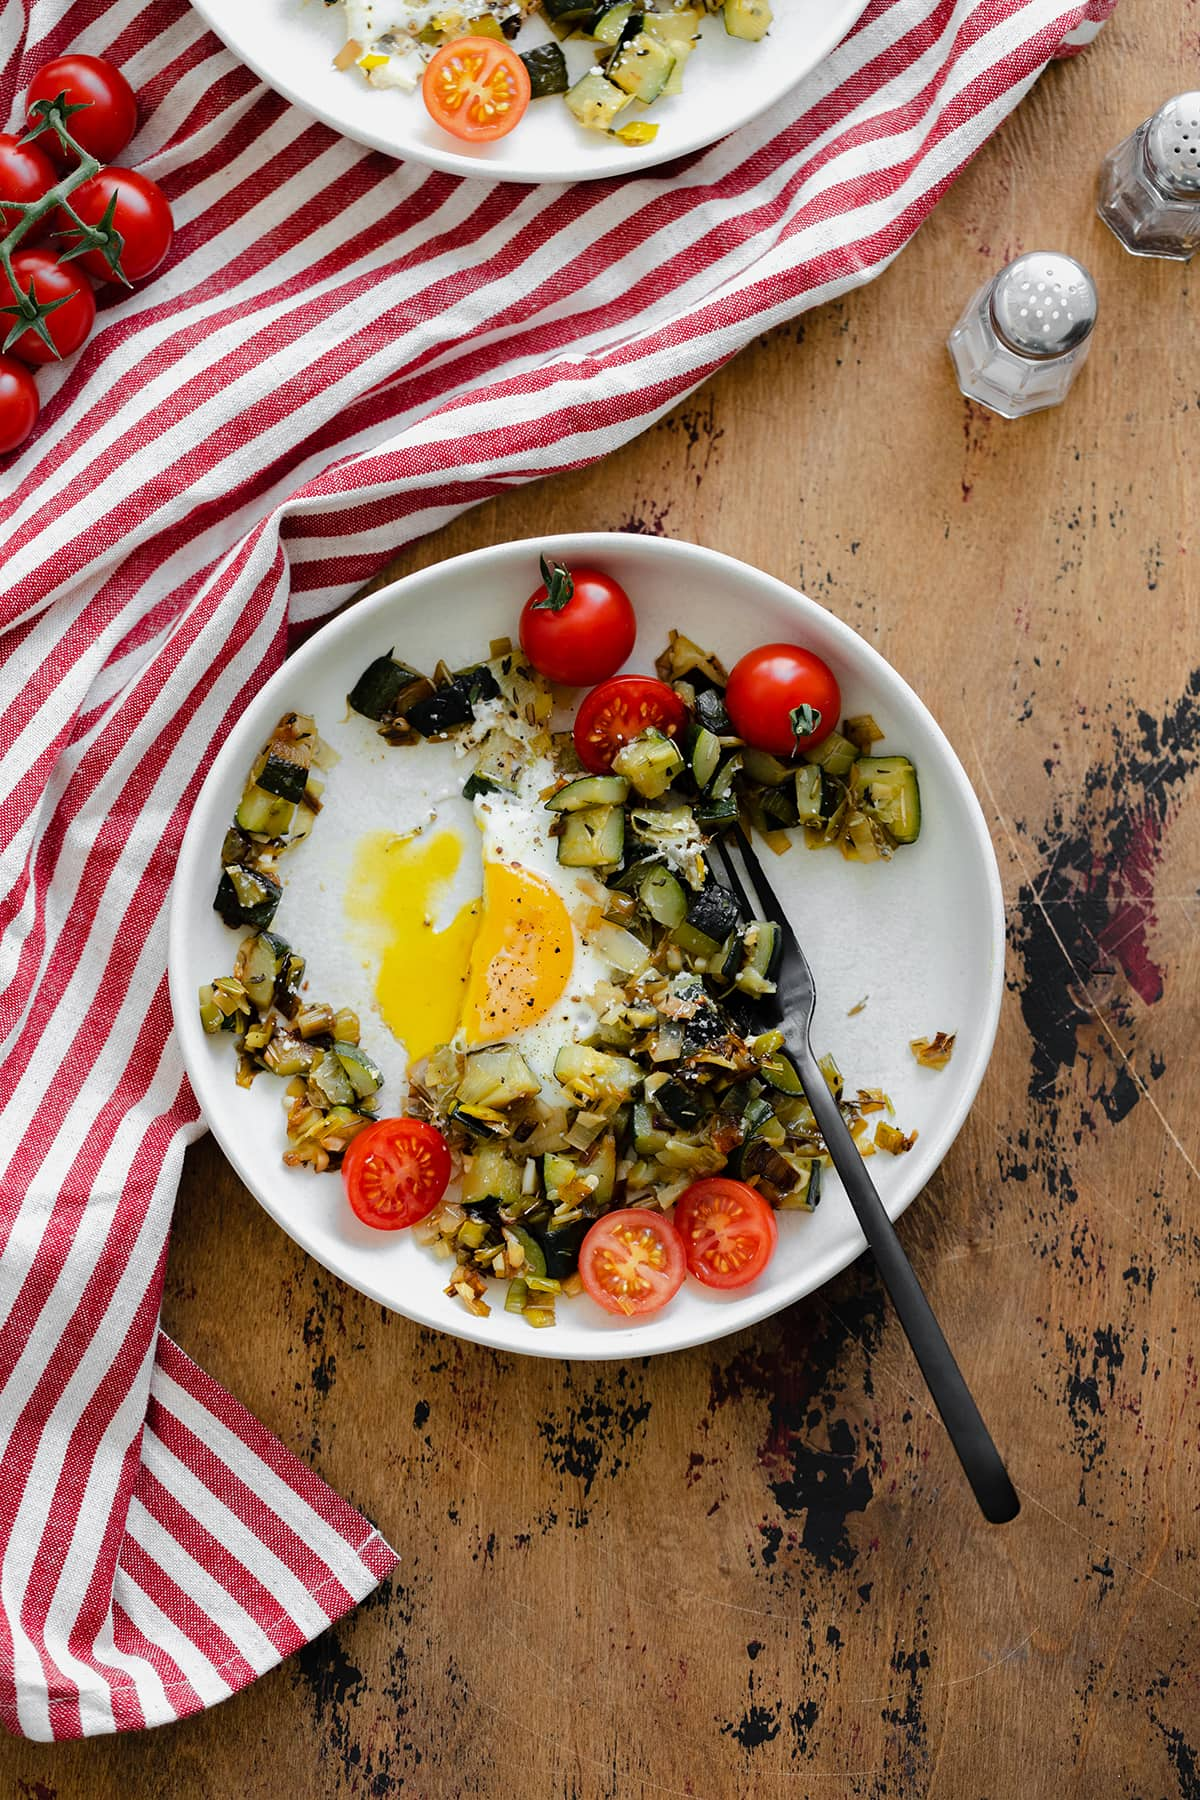 An overhead shot of Leek and Zucchini Egg Skillet on a red and white striped kitchen towel and wooden table